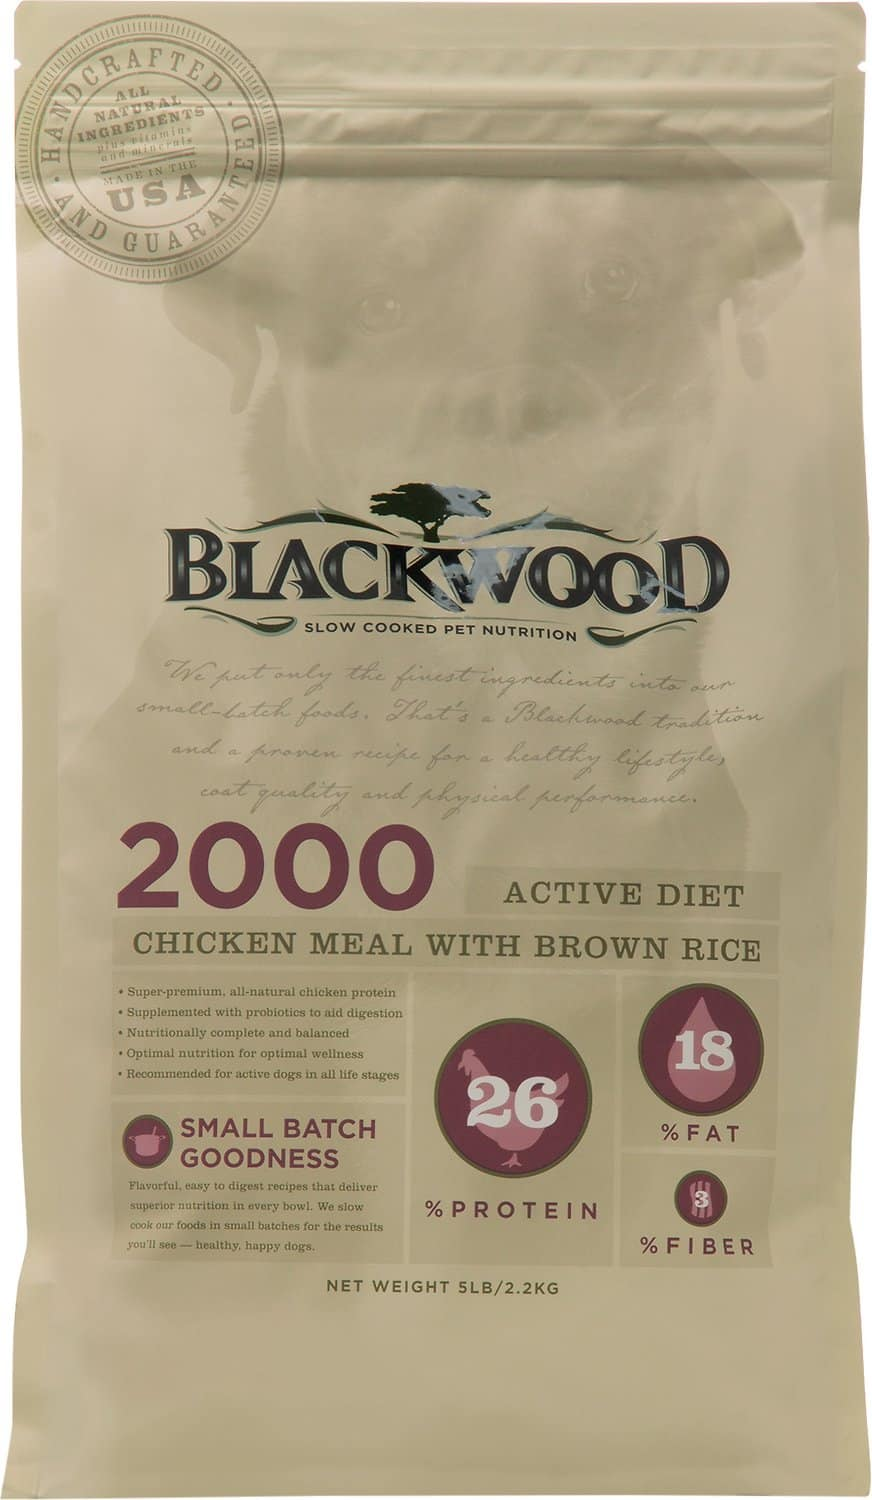 Blackwood Dog Food Review 2021: Best Slow Cooked Pet Nutrition? 15